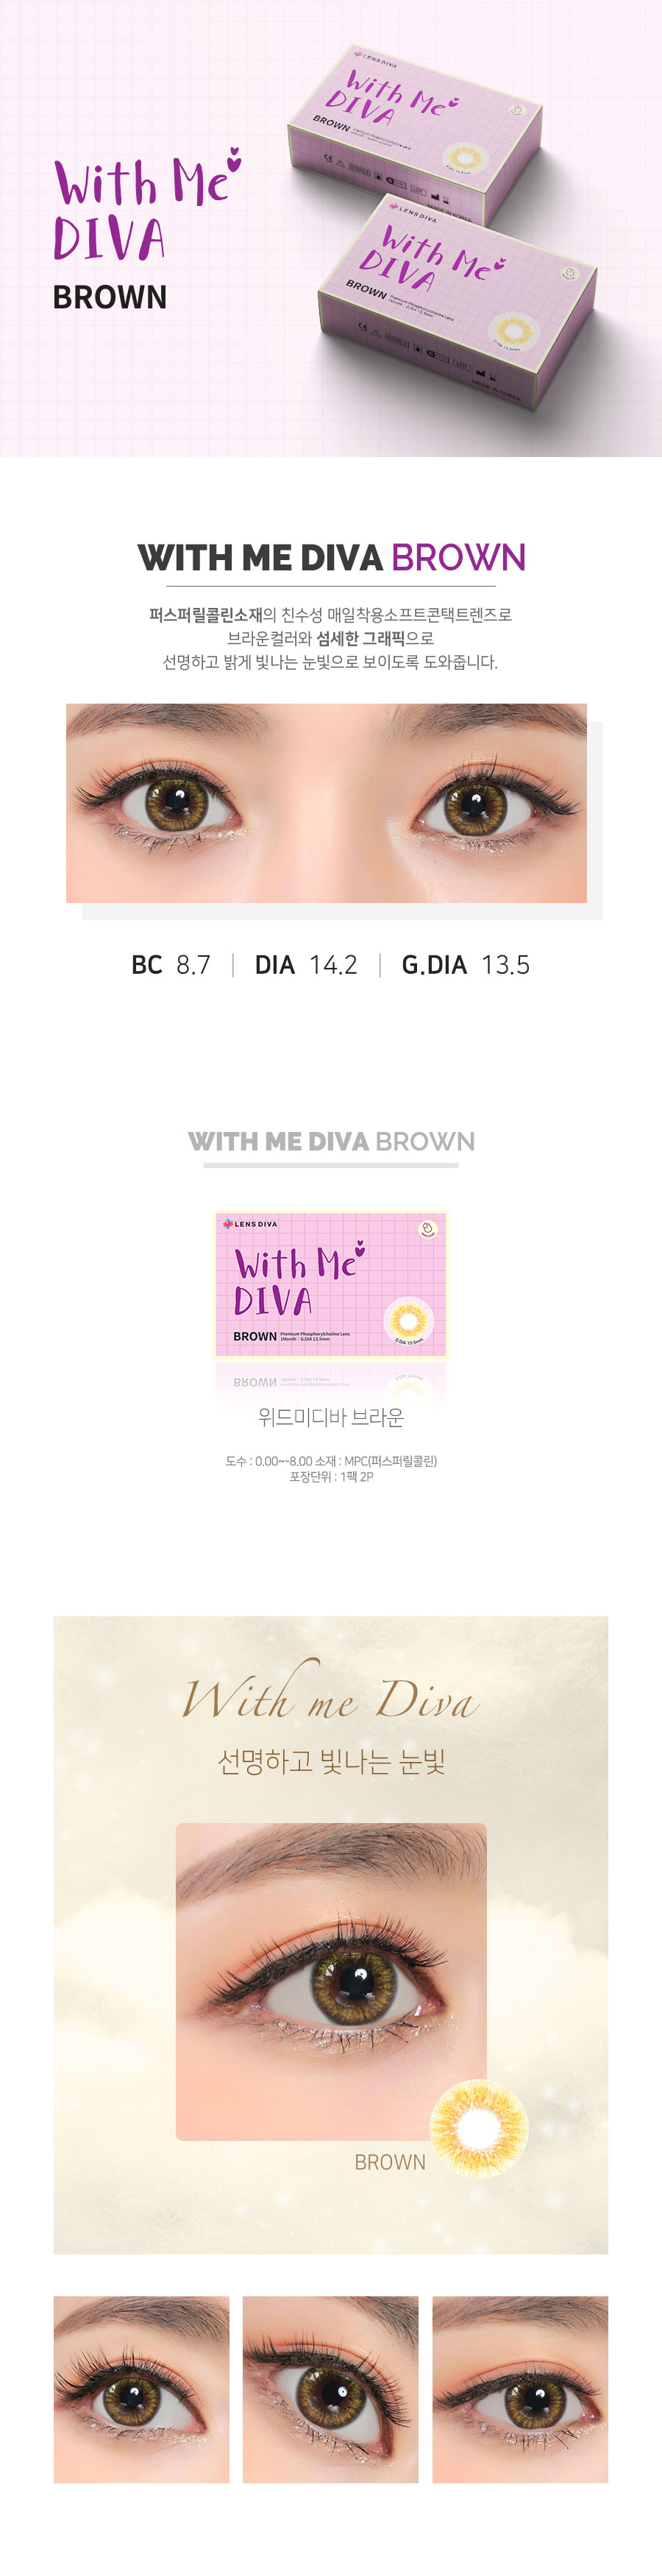 whith-me-diva-brown11.jpg